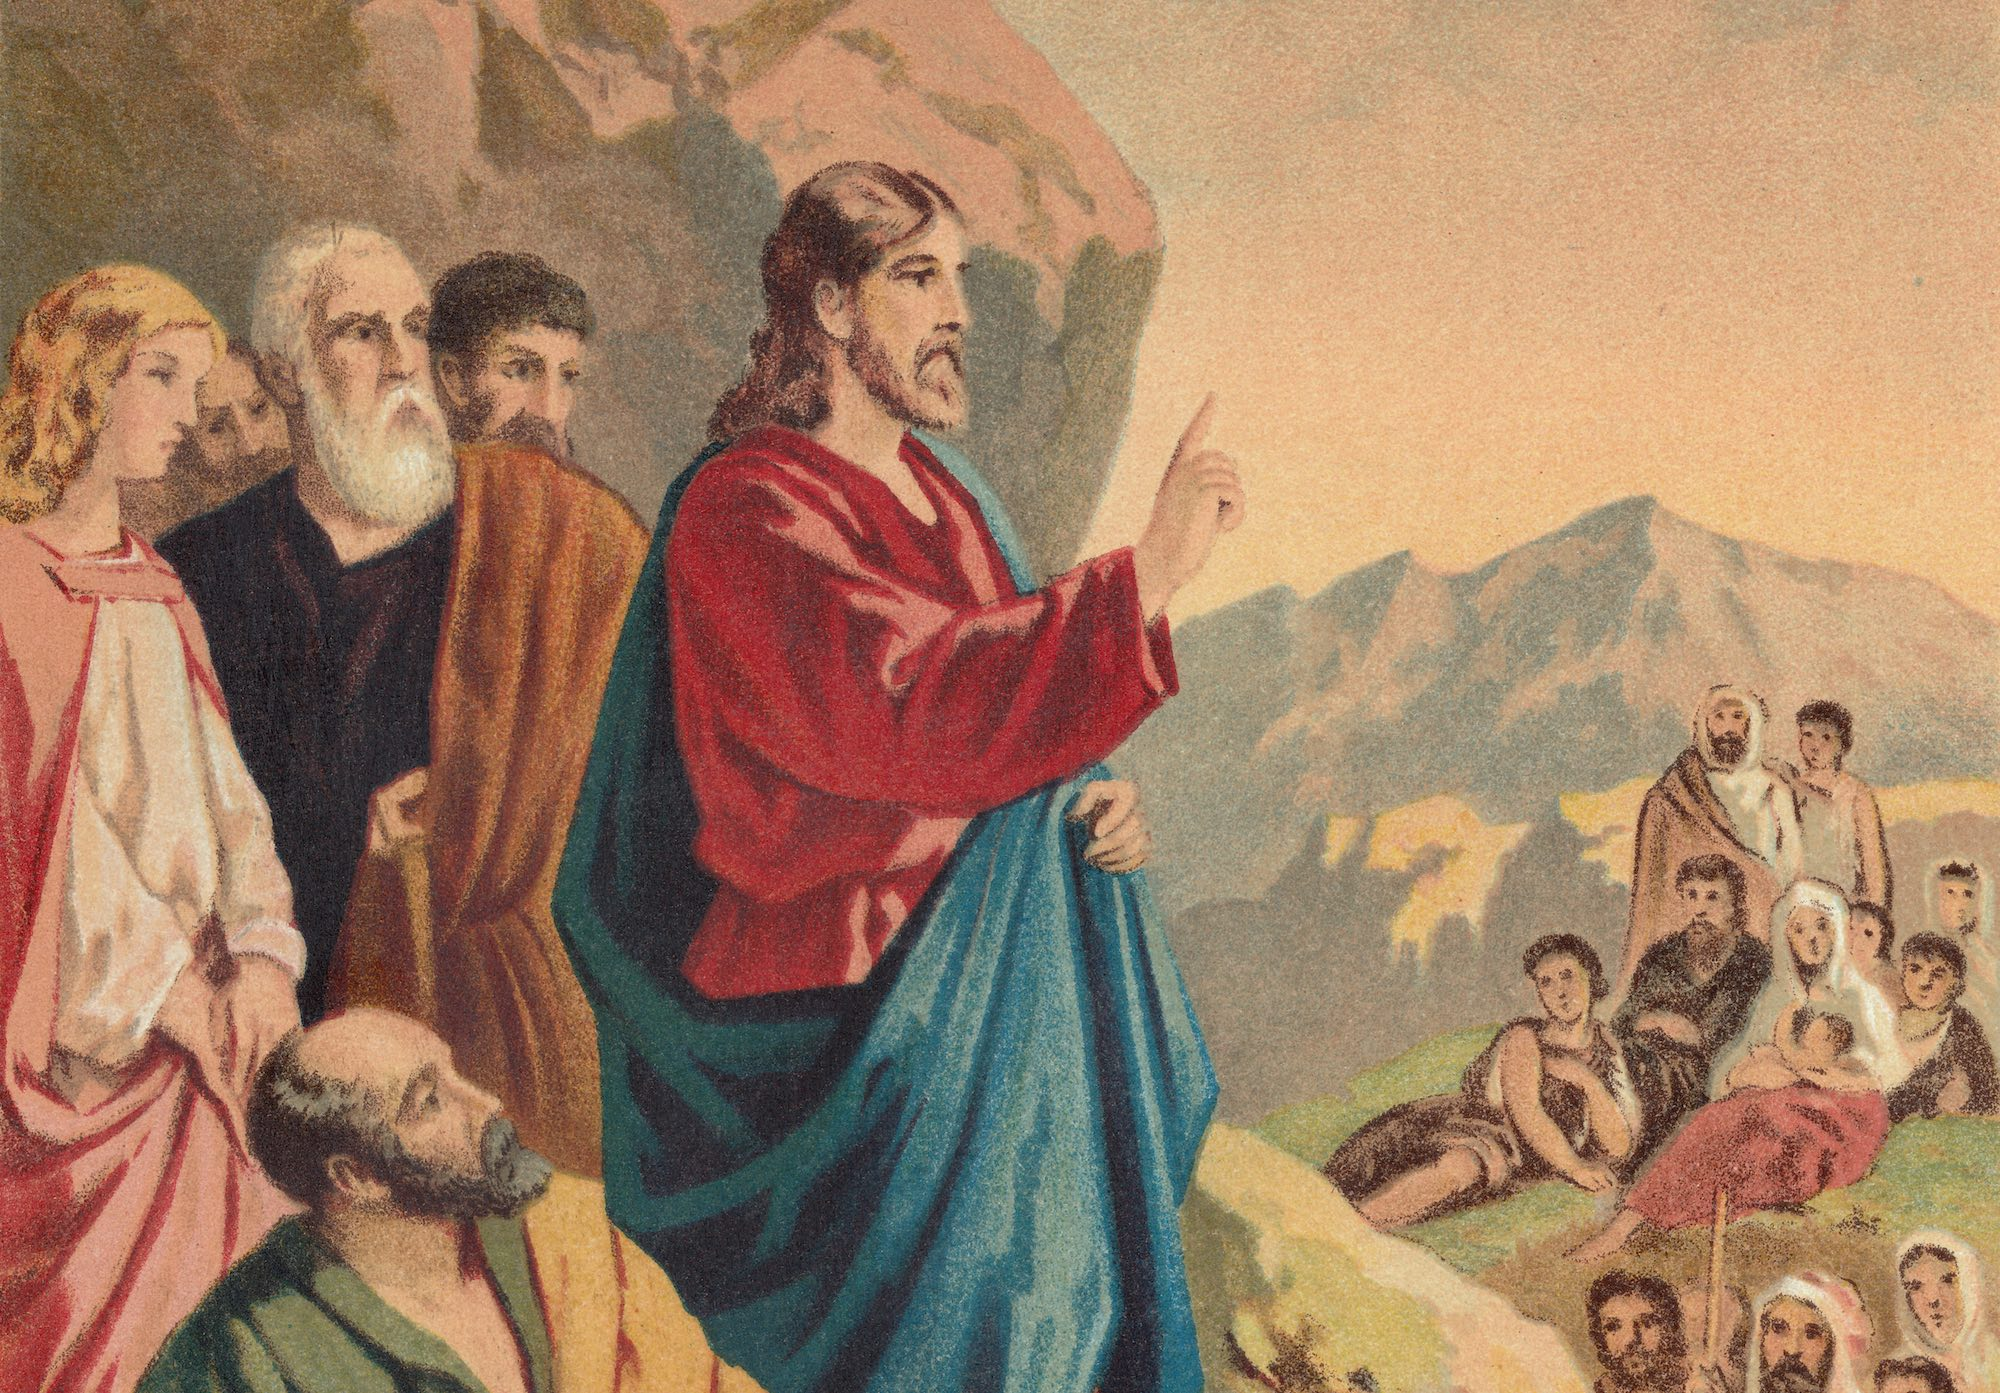 Illustration of Jesus teaching on Sermon on the Mount